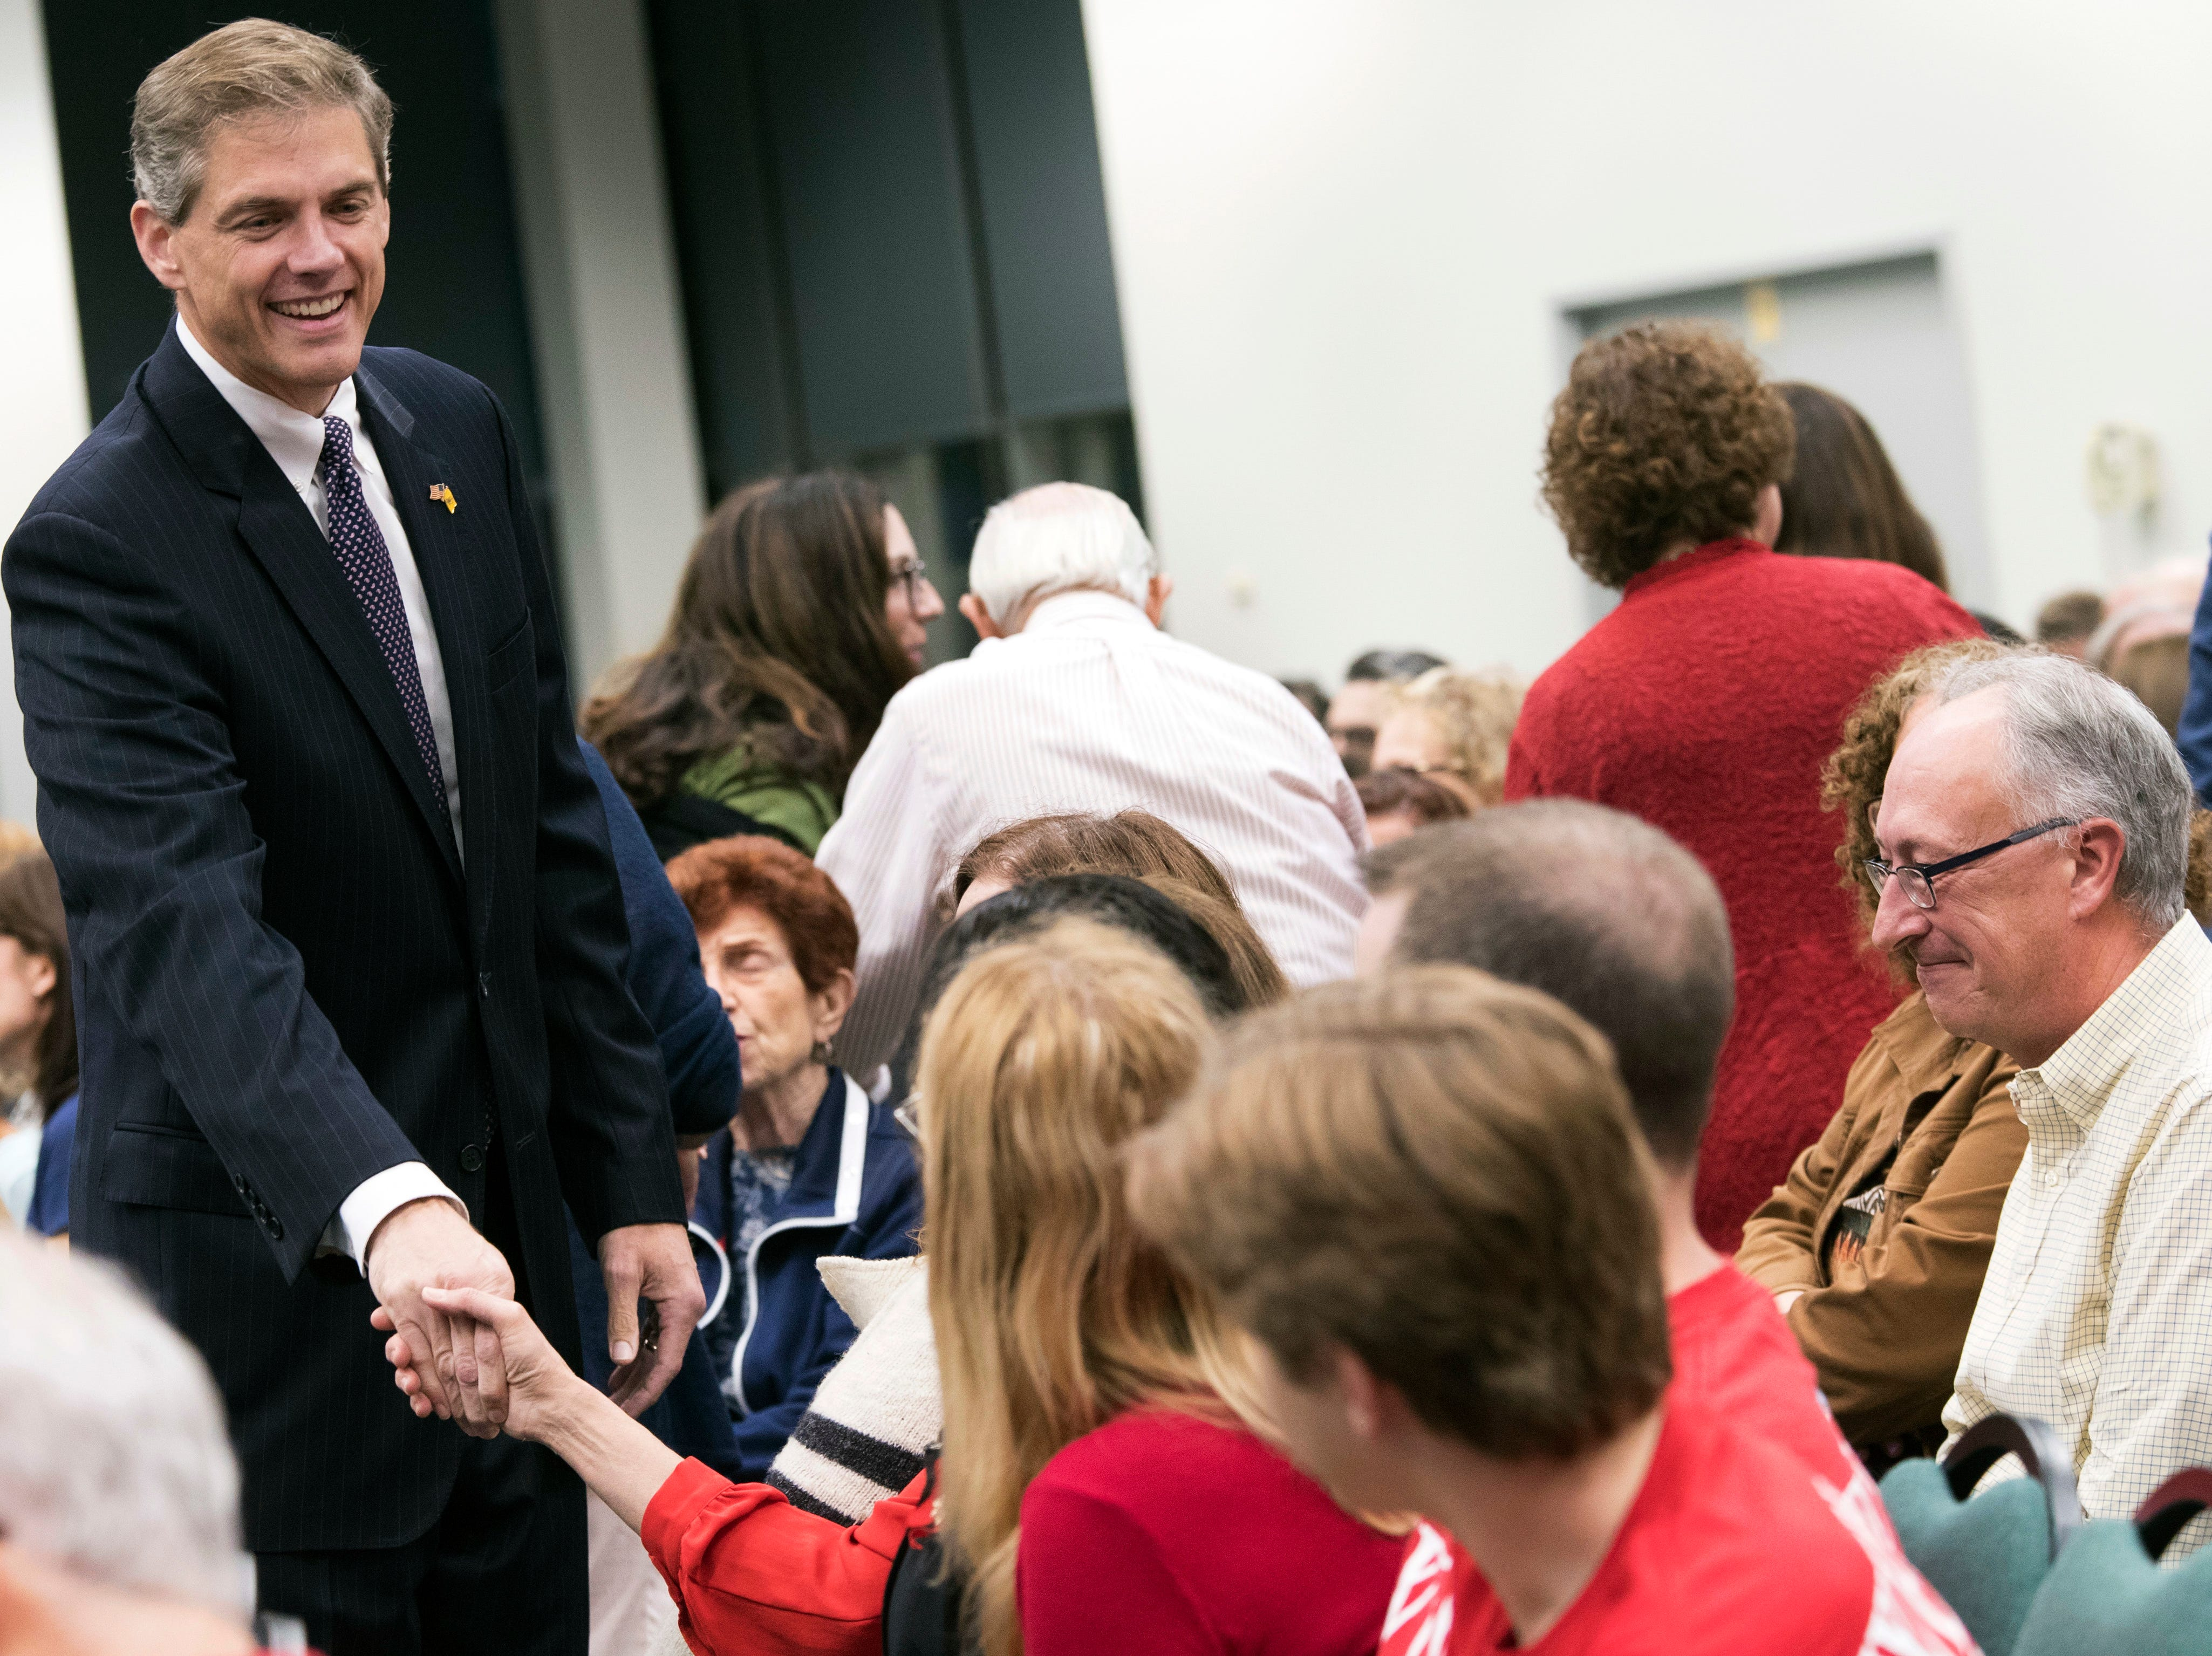 Republican Assemblyman Jay Webber greets voters during a candidate forum at the UJC of MetroWest New Jersey, Tuesday, Oct. 9, 2018, in Whippany, N.J. (AP Photo/Mary Altaffer)